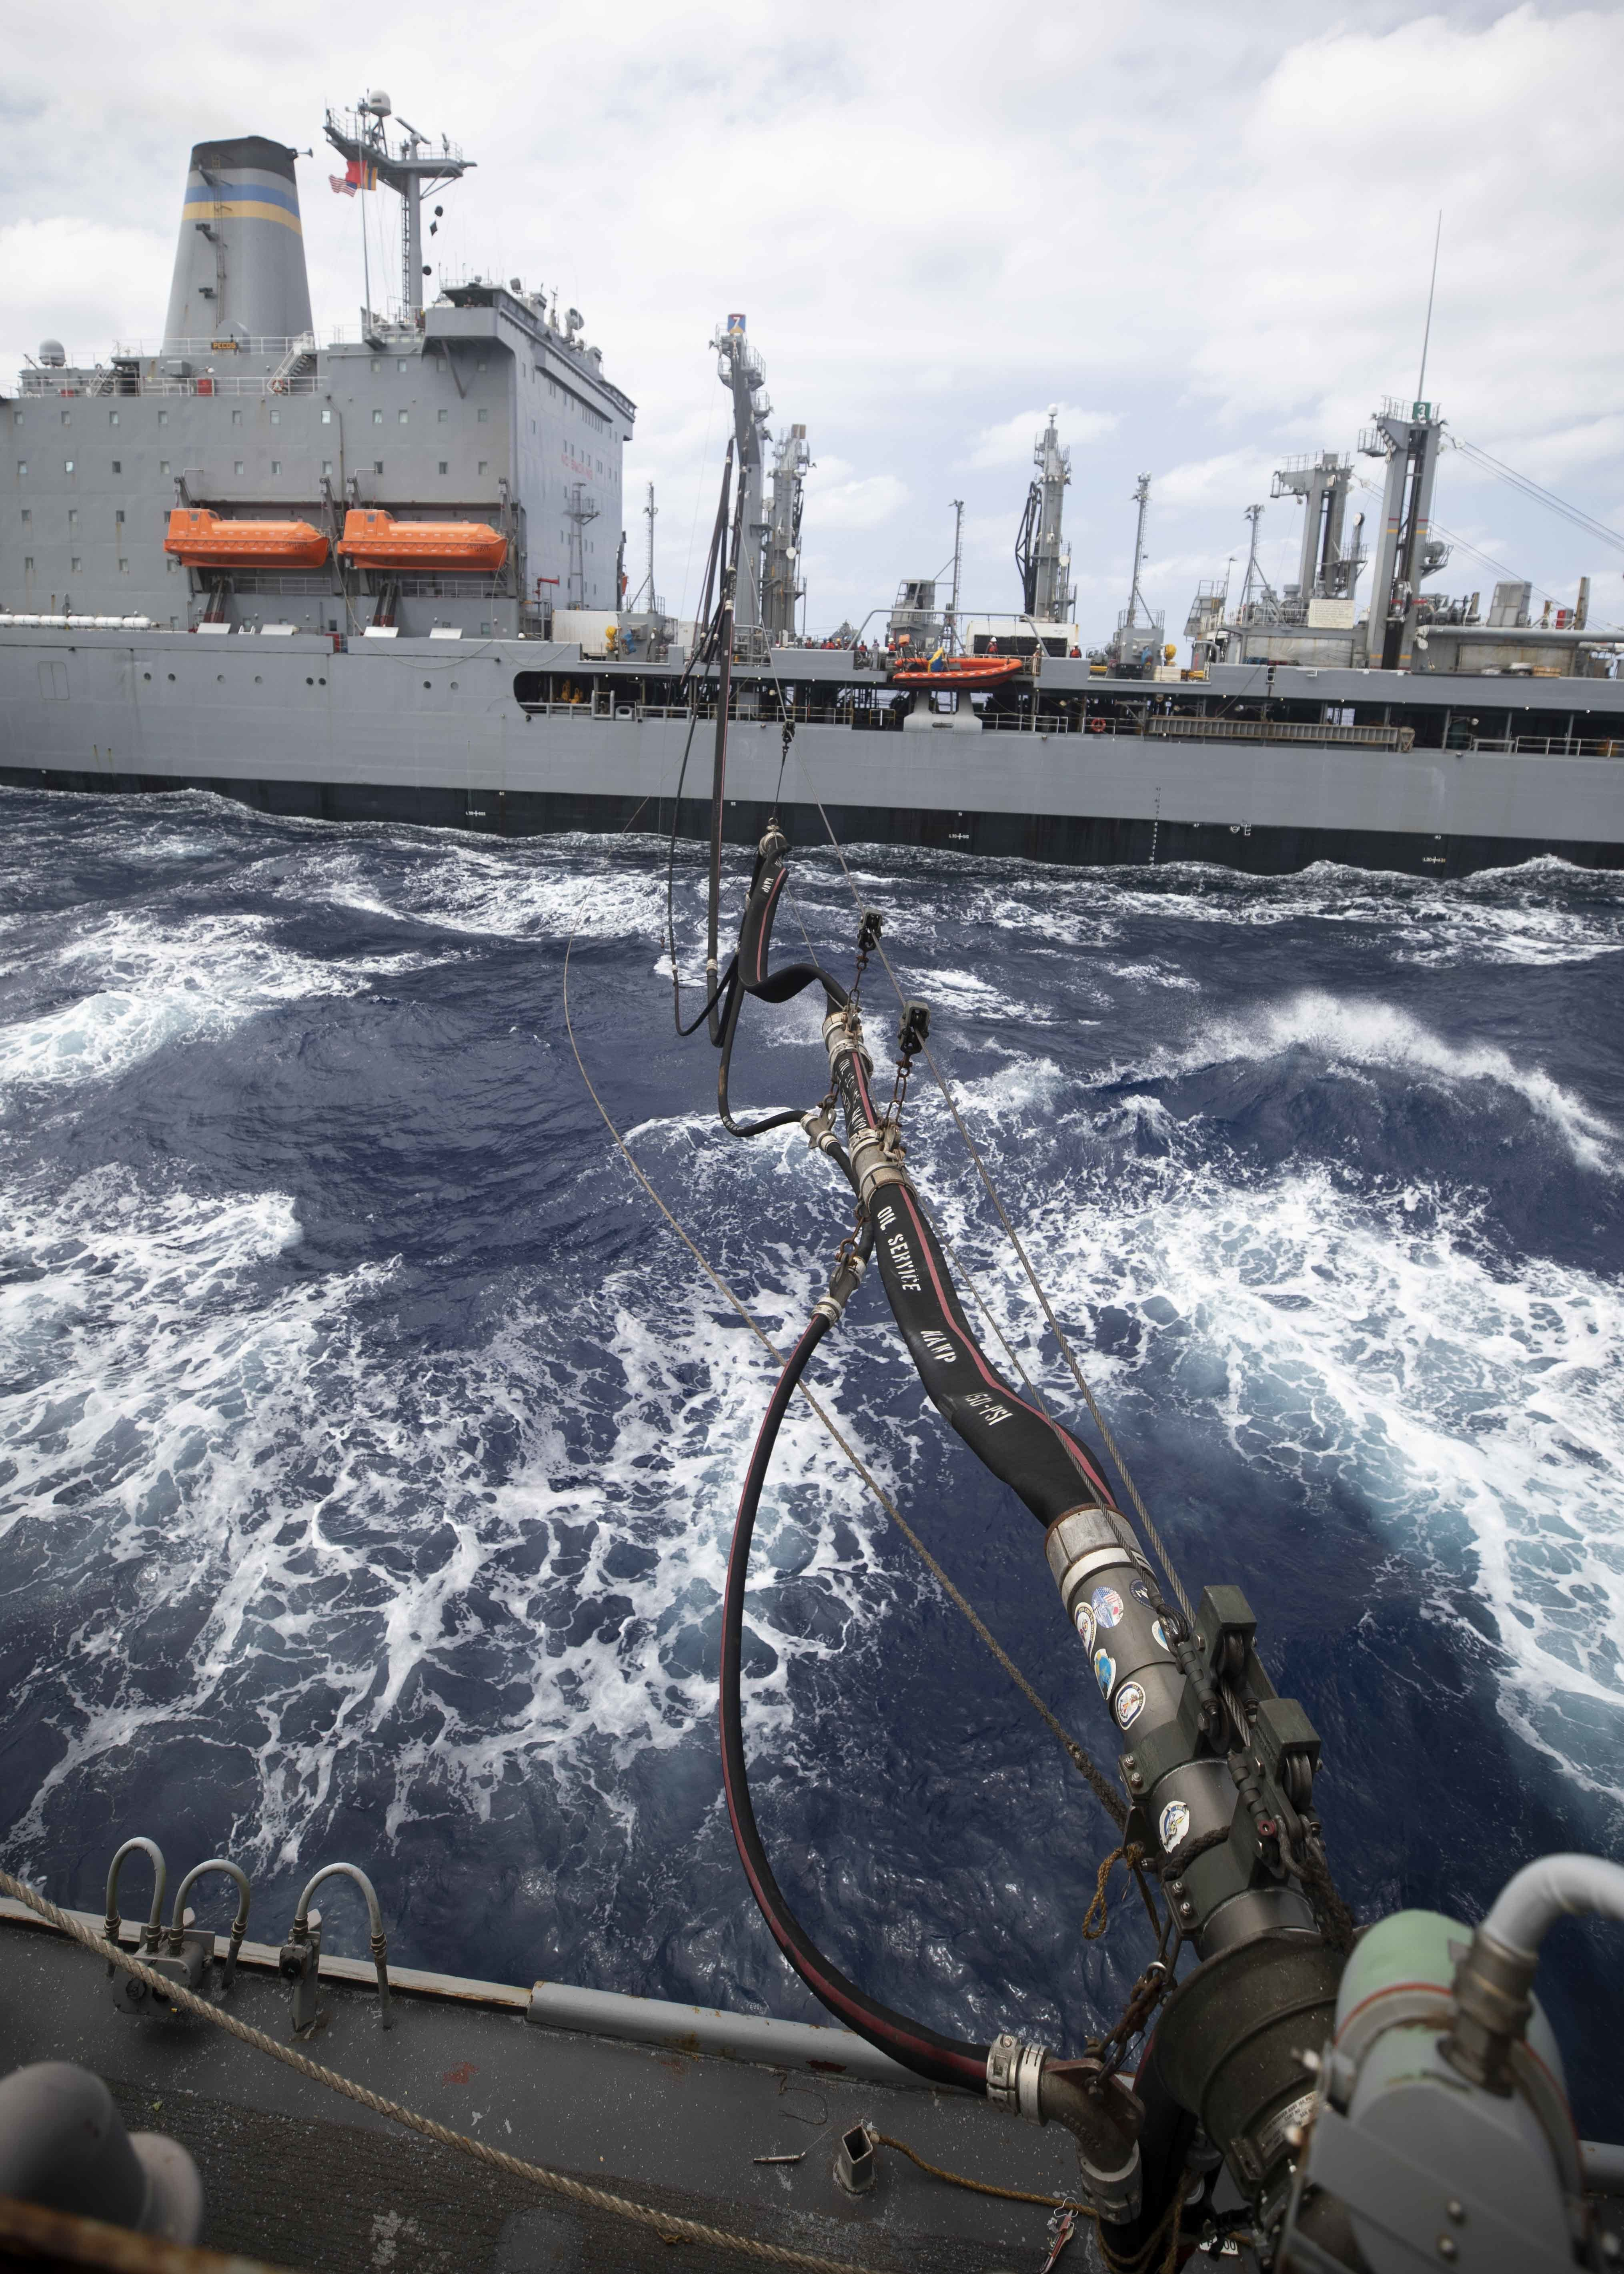 The Arleigh Burke-class guided-missile destroyer USS Rafael Peralta (DDG 115) conducts a refueling at sea with the fleet replenishment oiler USNS Pecos (T-AO 197).